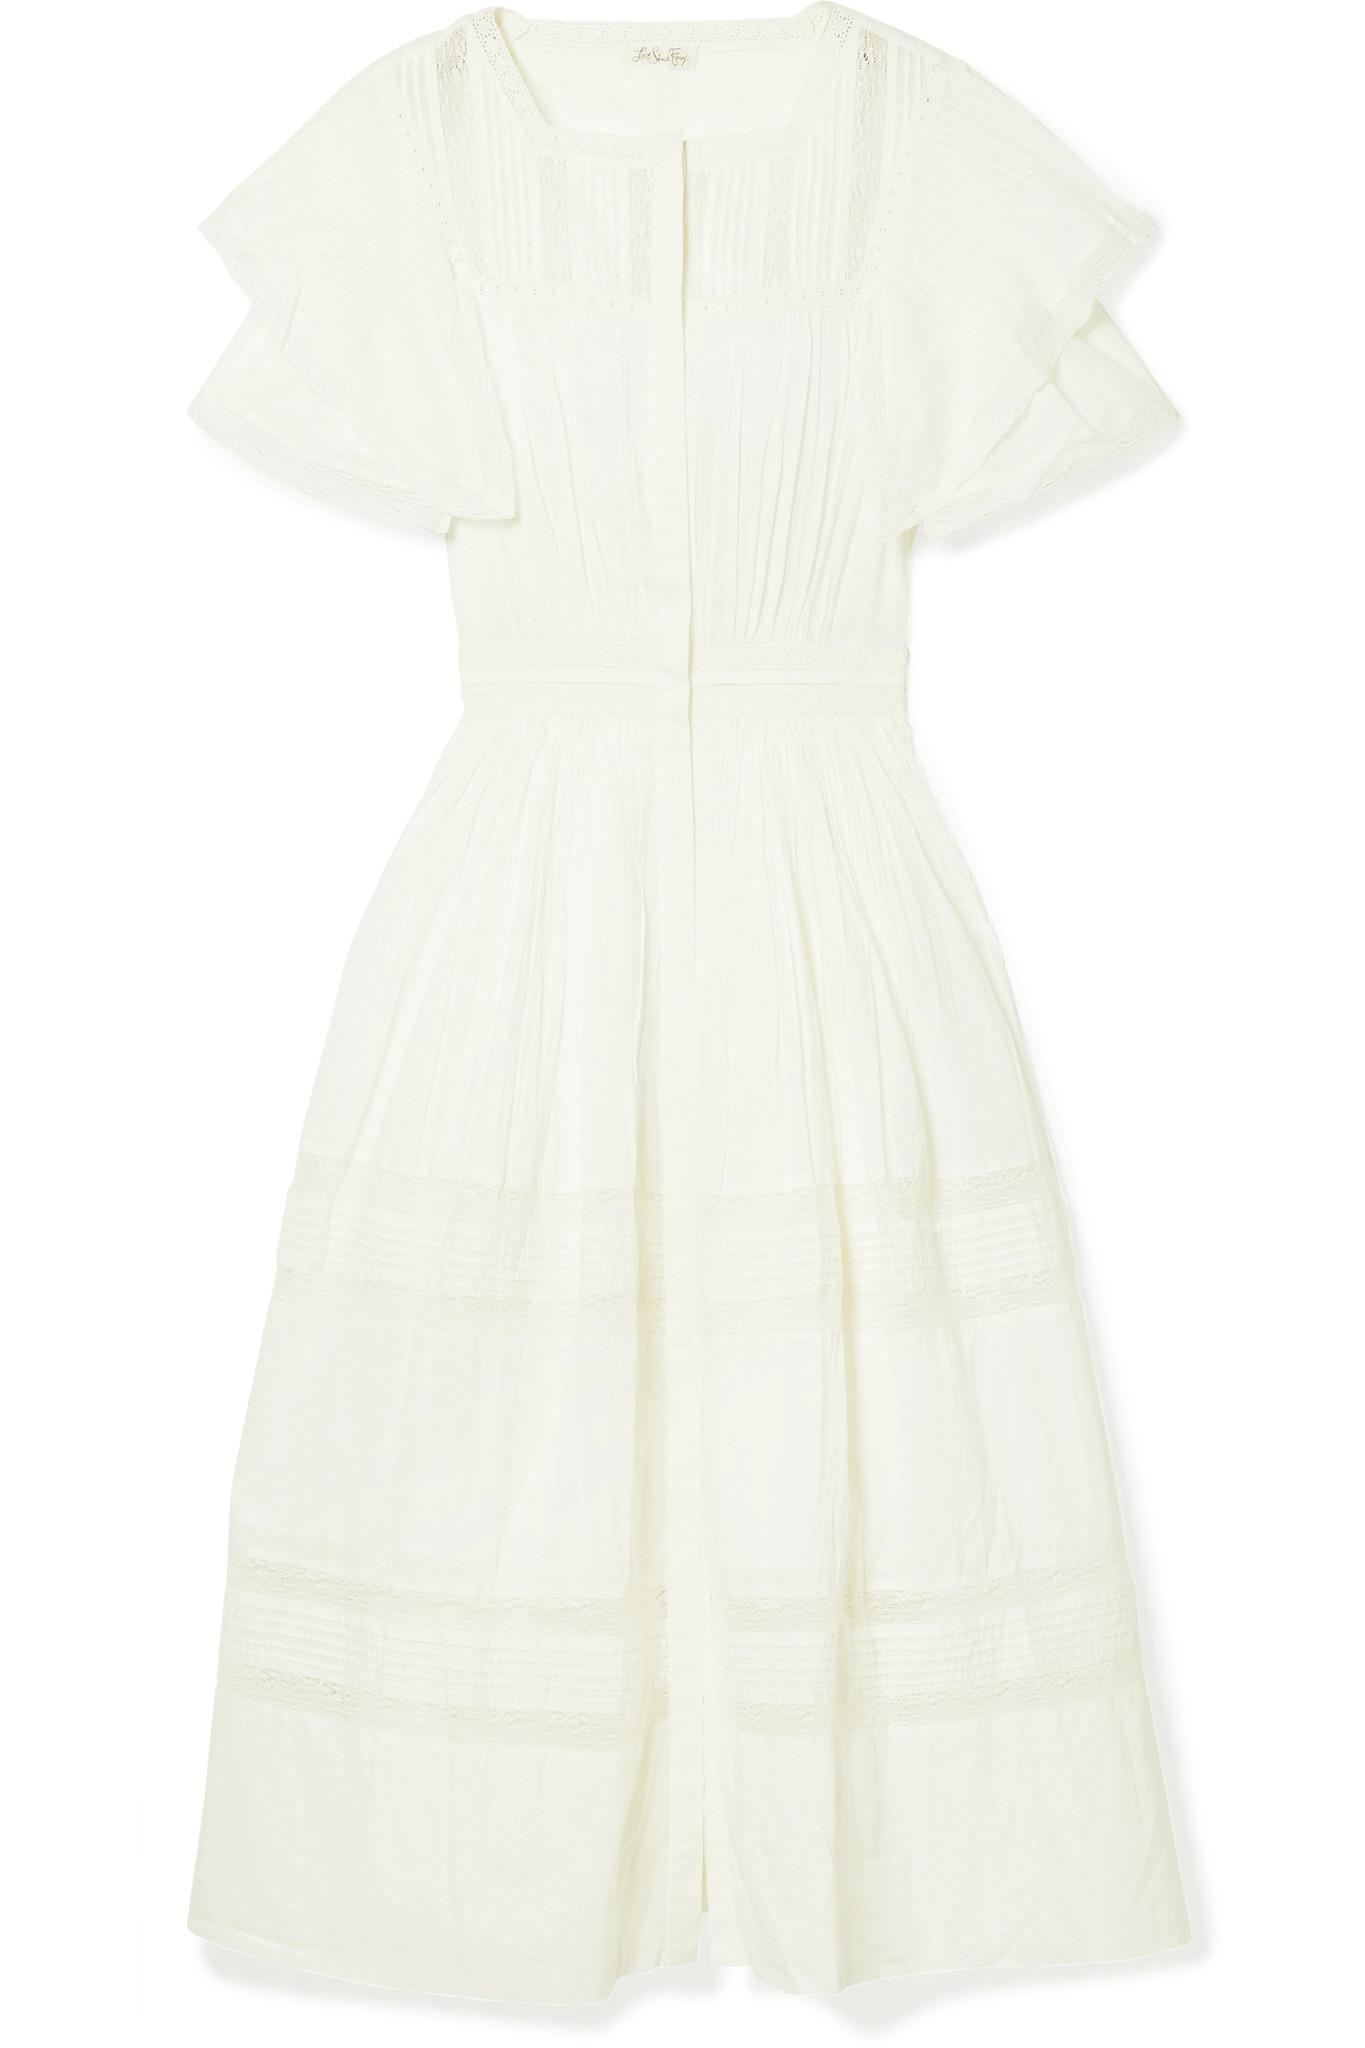 Callie Ruffled Crocheted Lace-trimmed Cotton Midi Dress - White LoveShackFancy oHY5LQlUi